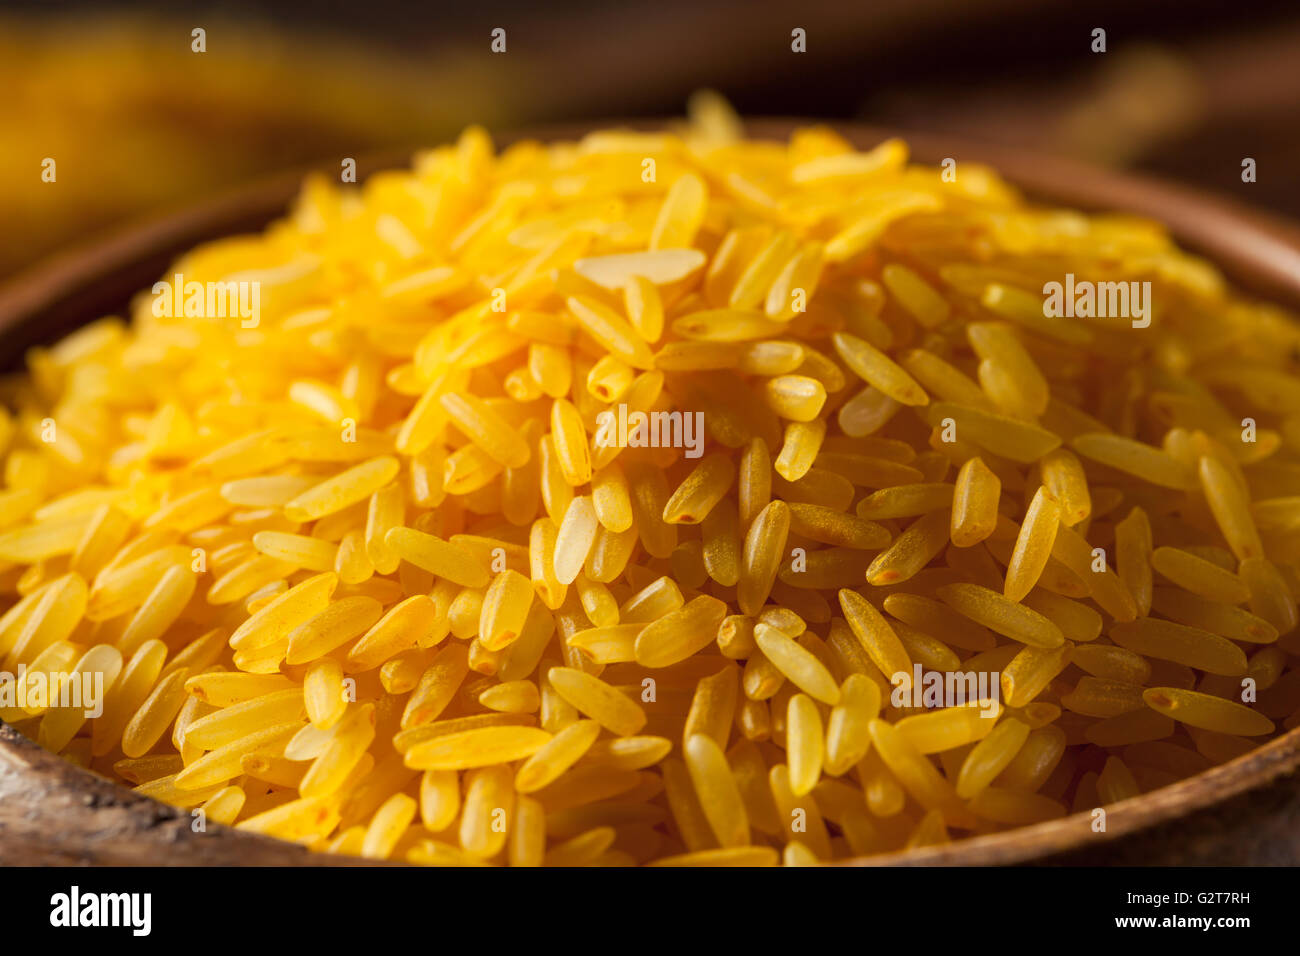 Raw Organic Yellow Saffron Rice High Resolution Stock Photography And Images Alamy